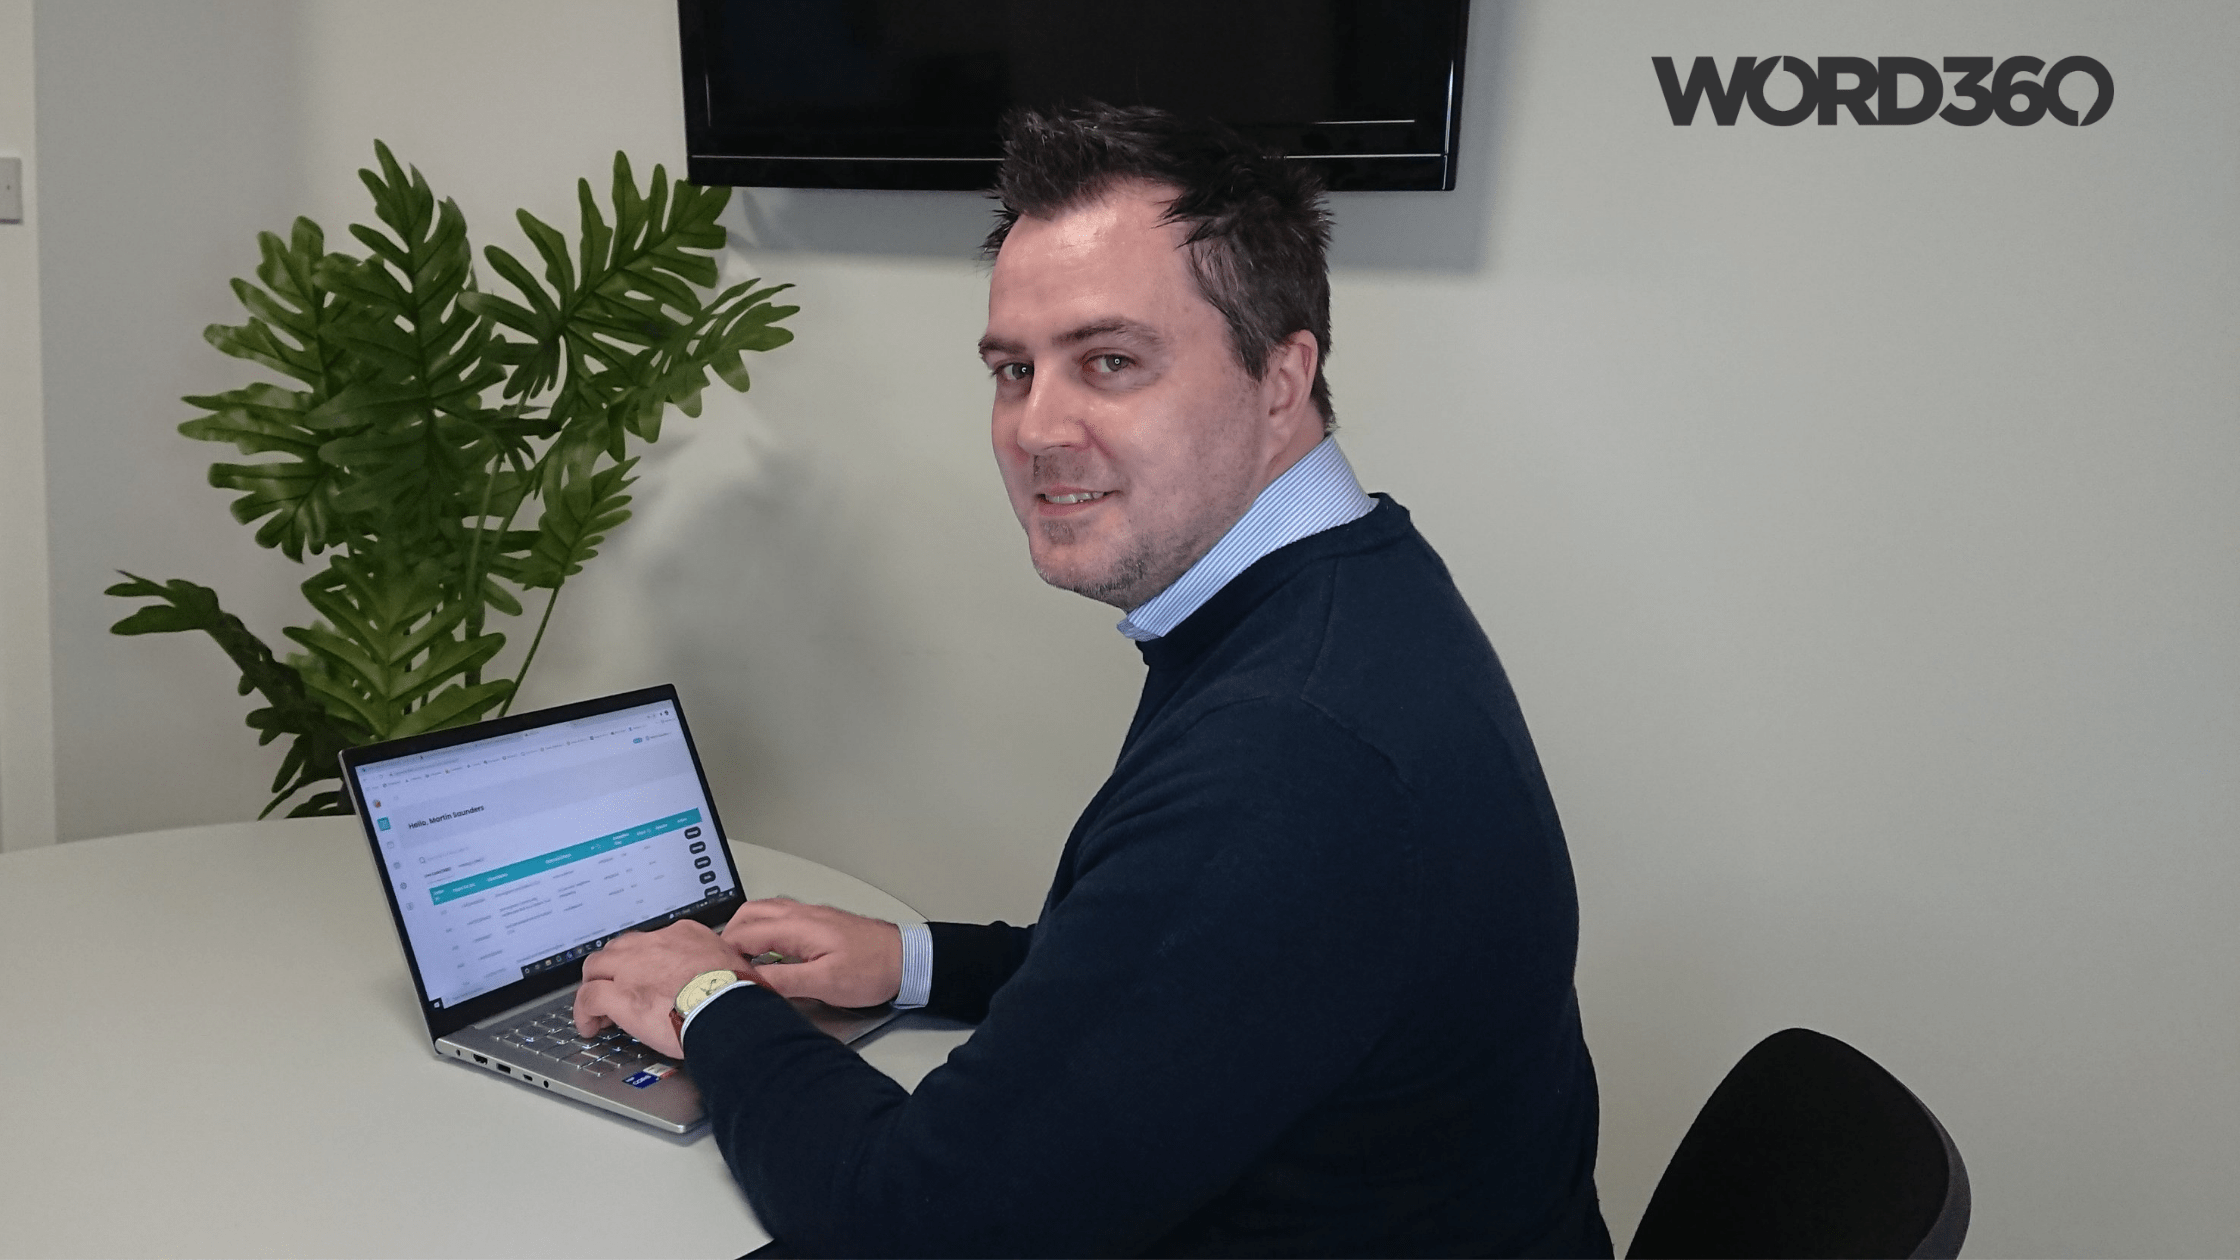 Martin with the latest version of Wordskii